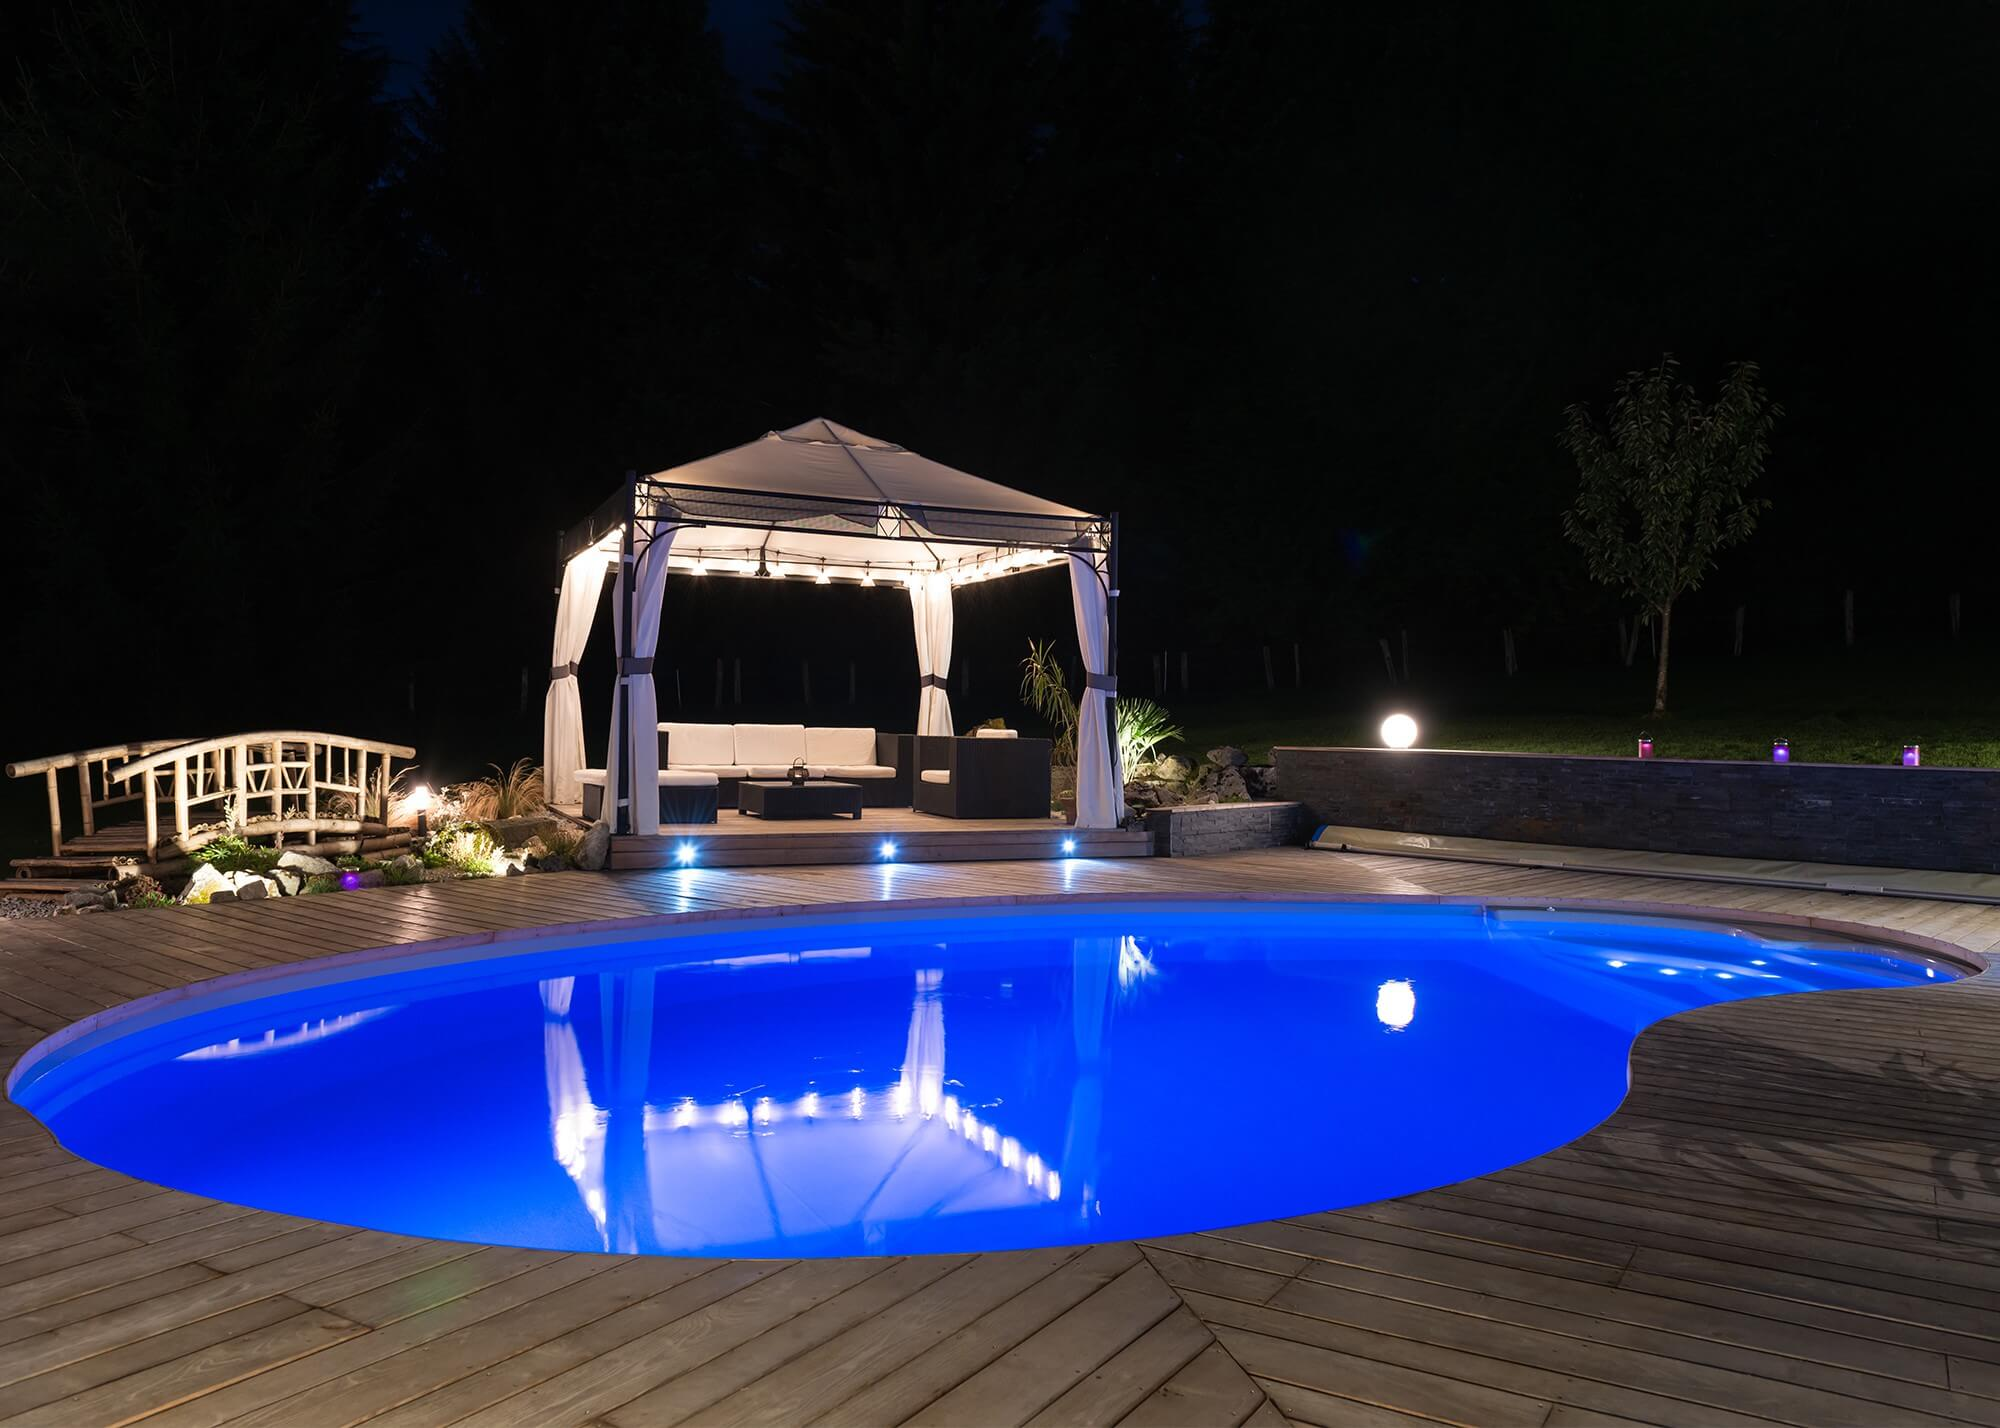 Ampoule leds piscines waterair for Piscine enterree 6x4